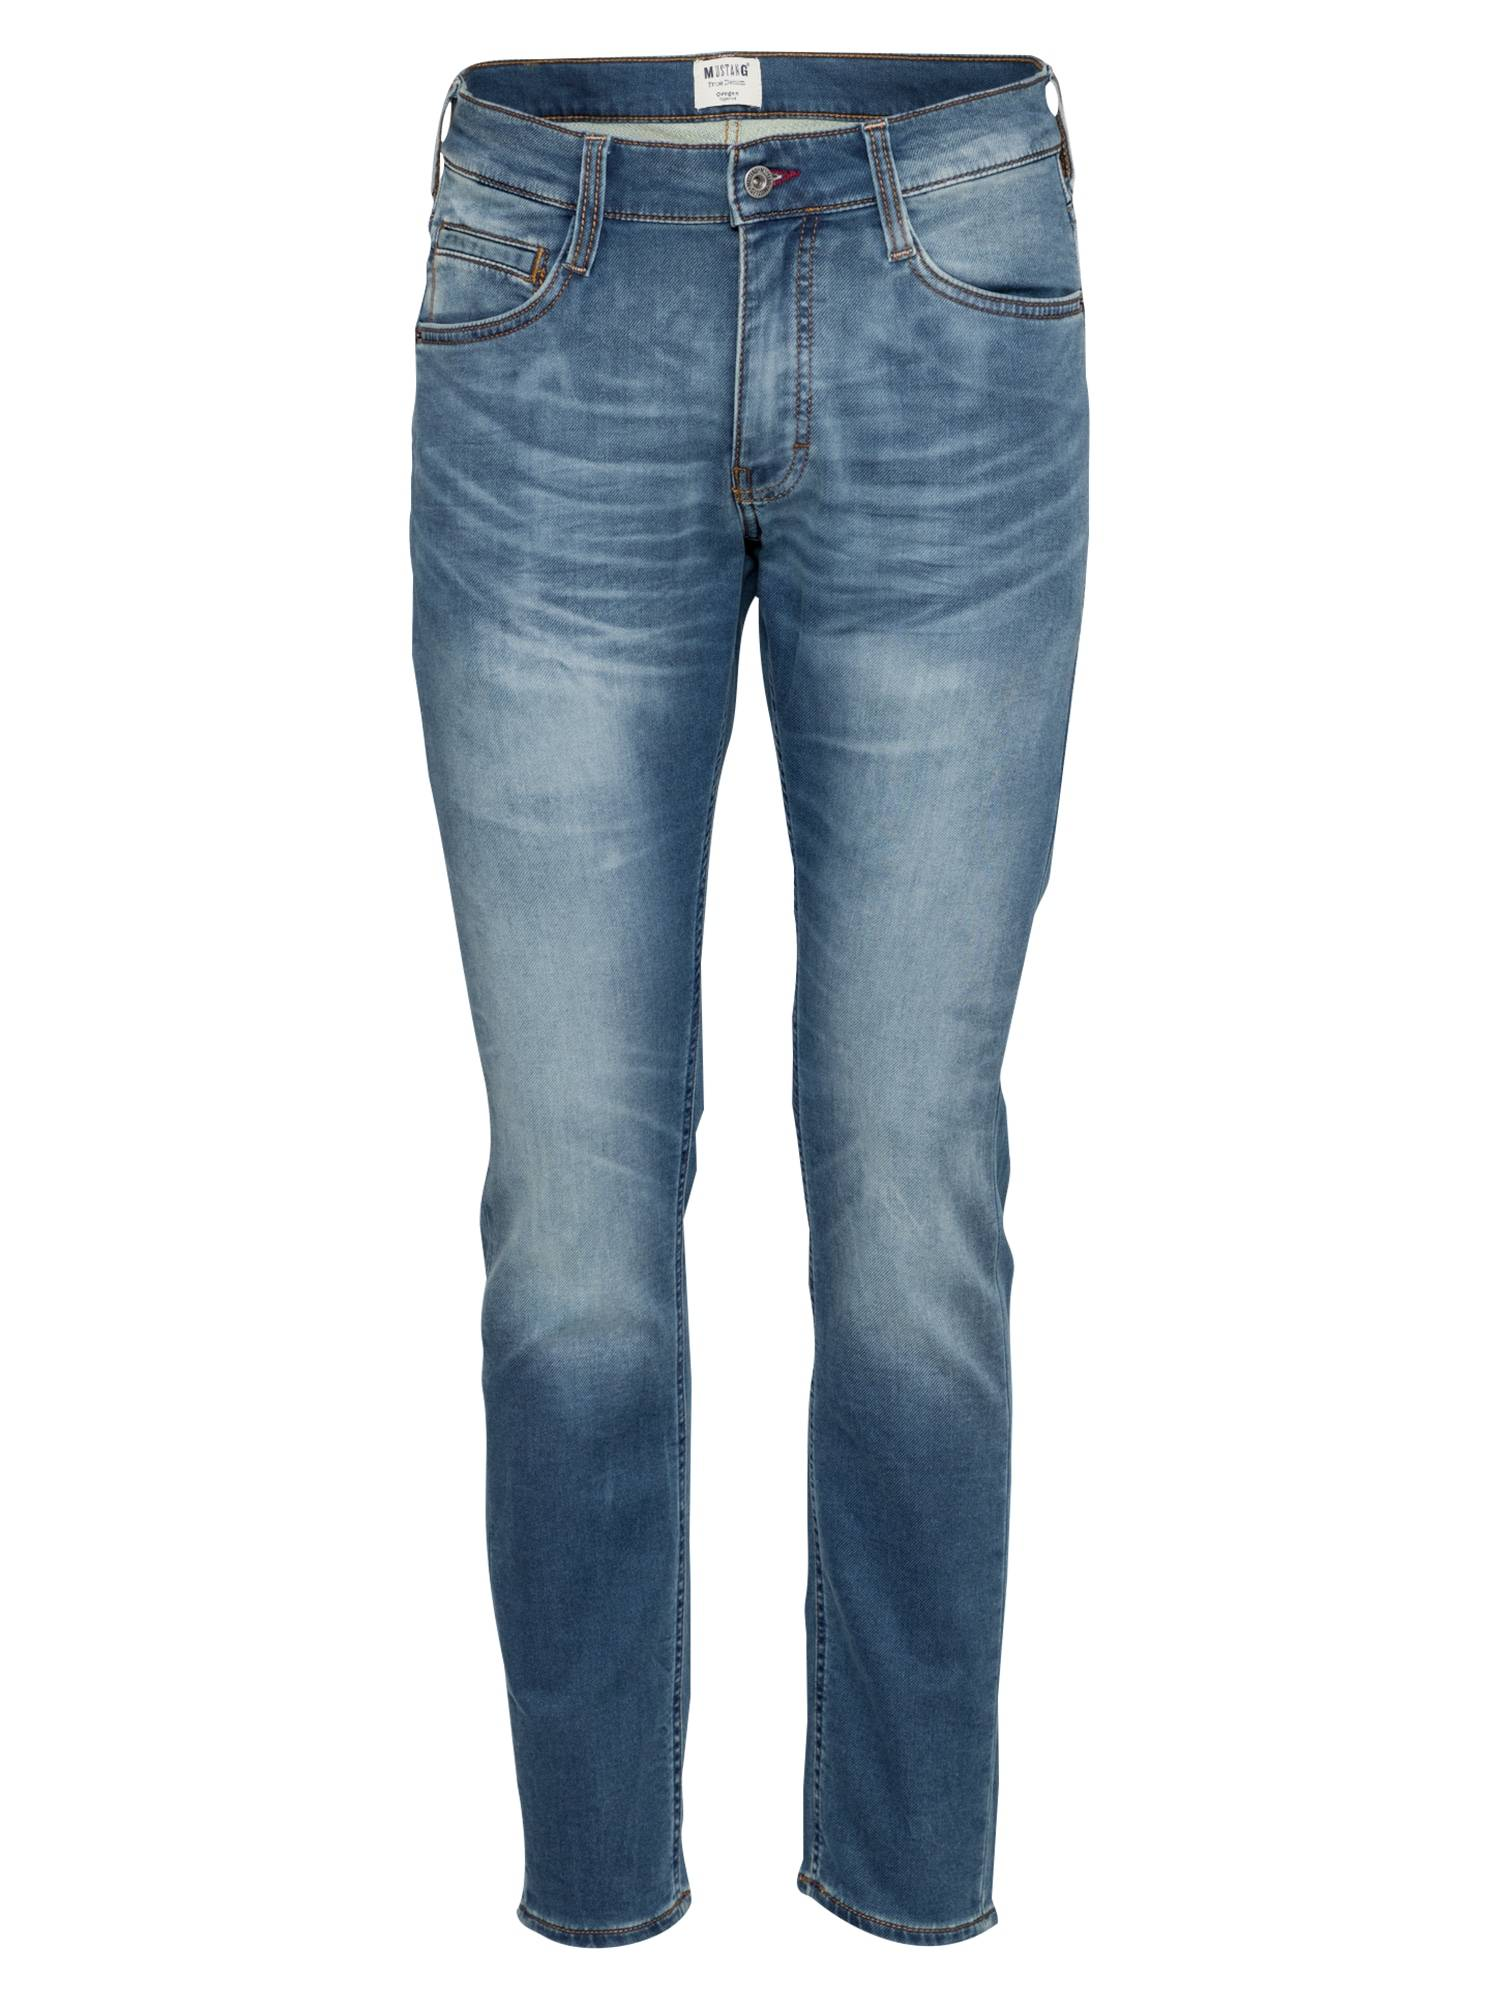 MUSTANG Jean 'Oregon Tapered K'  - Bleu - Taille: 35 - male